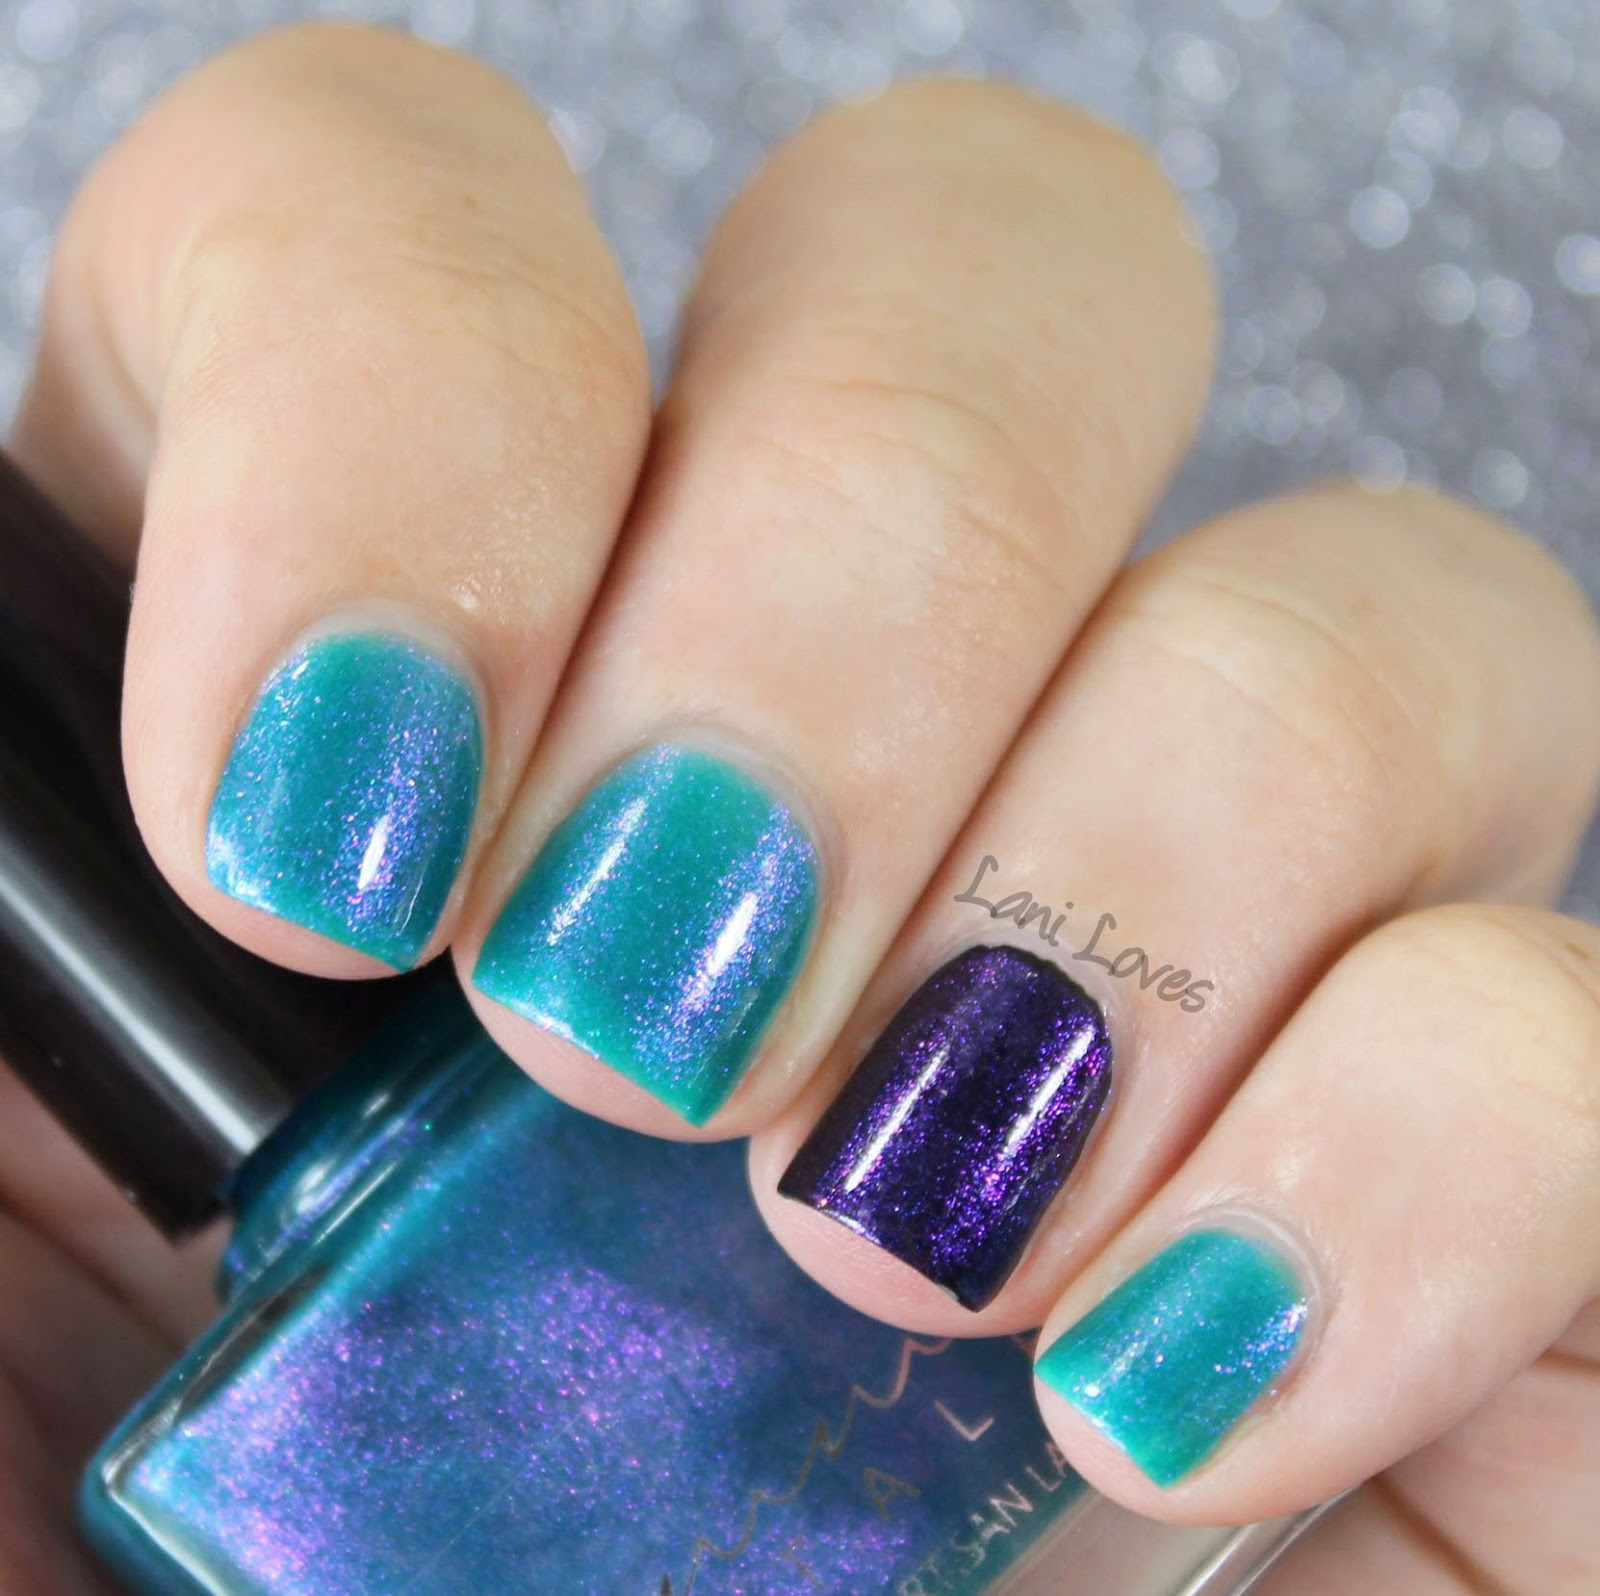 Femme Fatale Cosmetics - Weed in Her Heart nail polish swatches & review